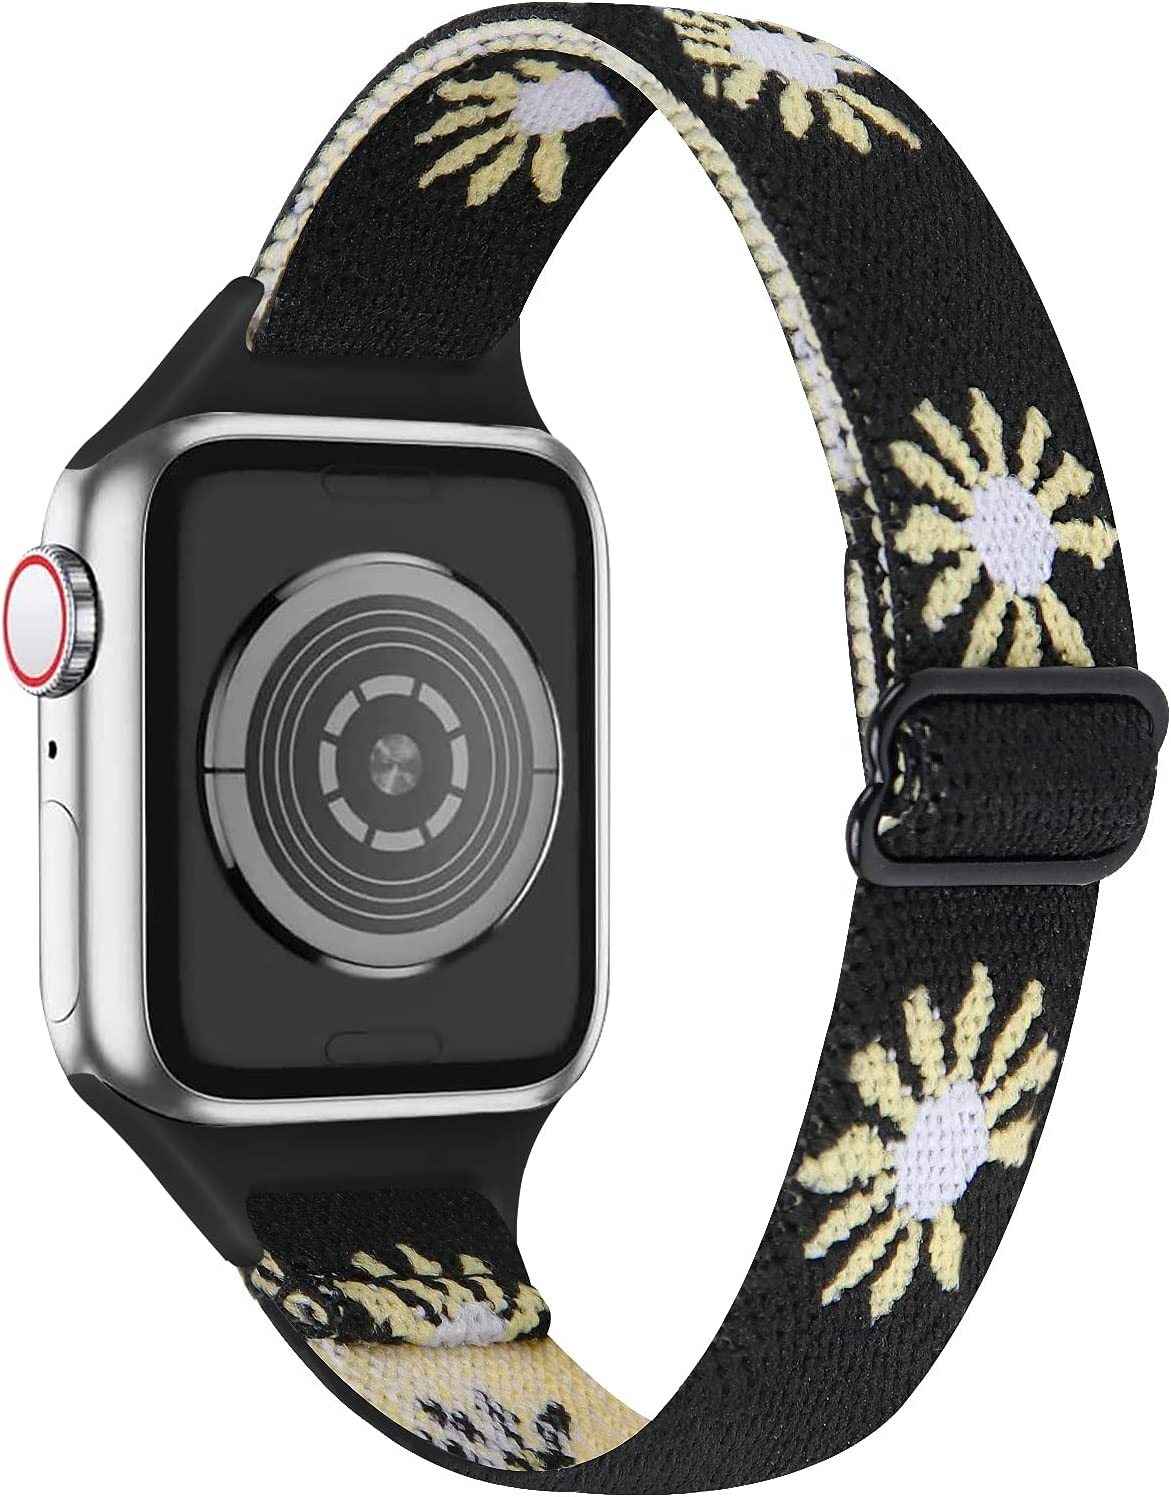 MEFEO Elastic Bands Compatible with Apple Watch Bands 38mm 40mm 42mm 44mm, Adjustable Nylon Sport Wristbands Replacement for iWatch Series 6/5/4/3/2/1/SE(Black Flower,38mm/40mm)